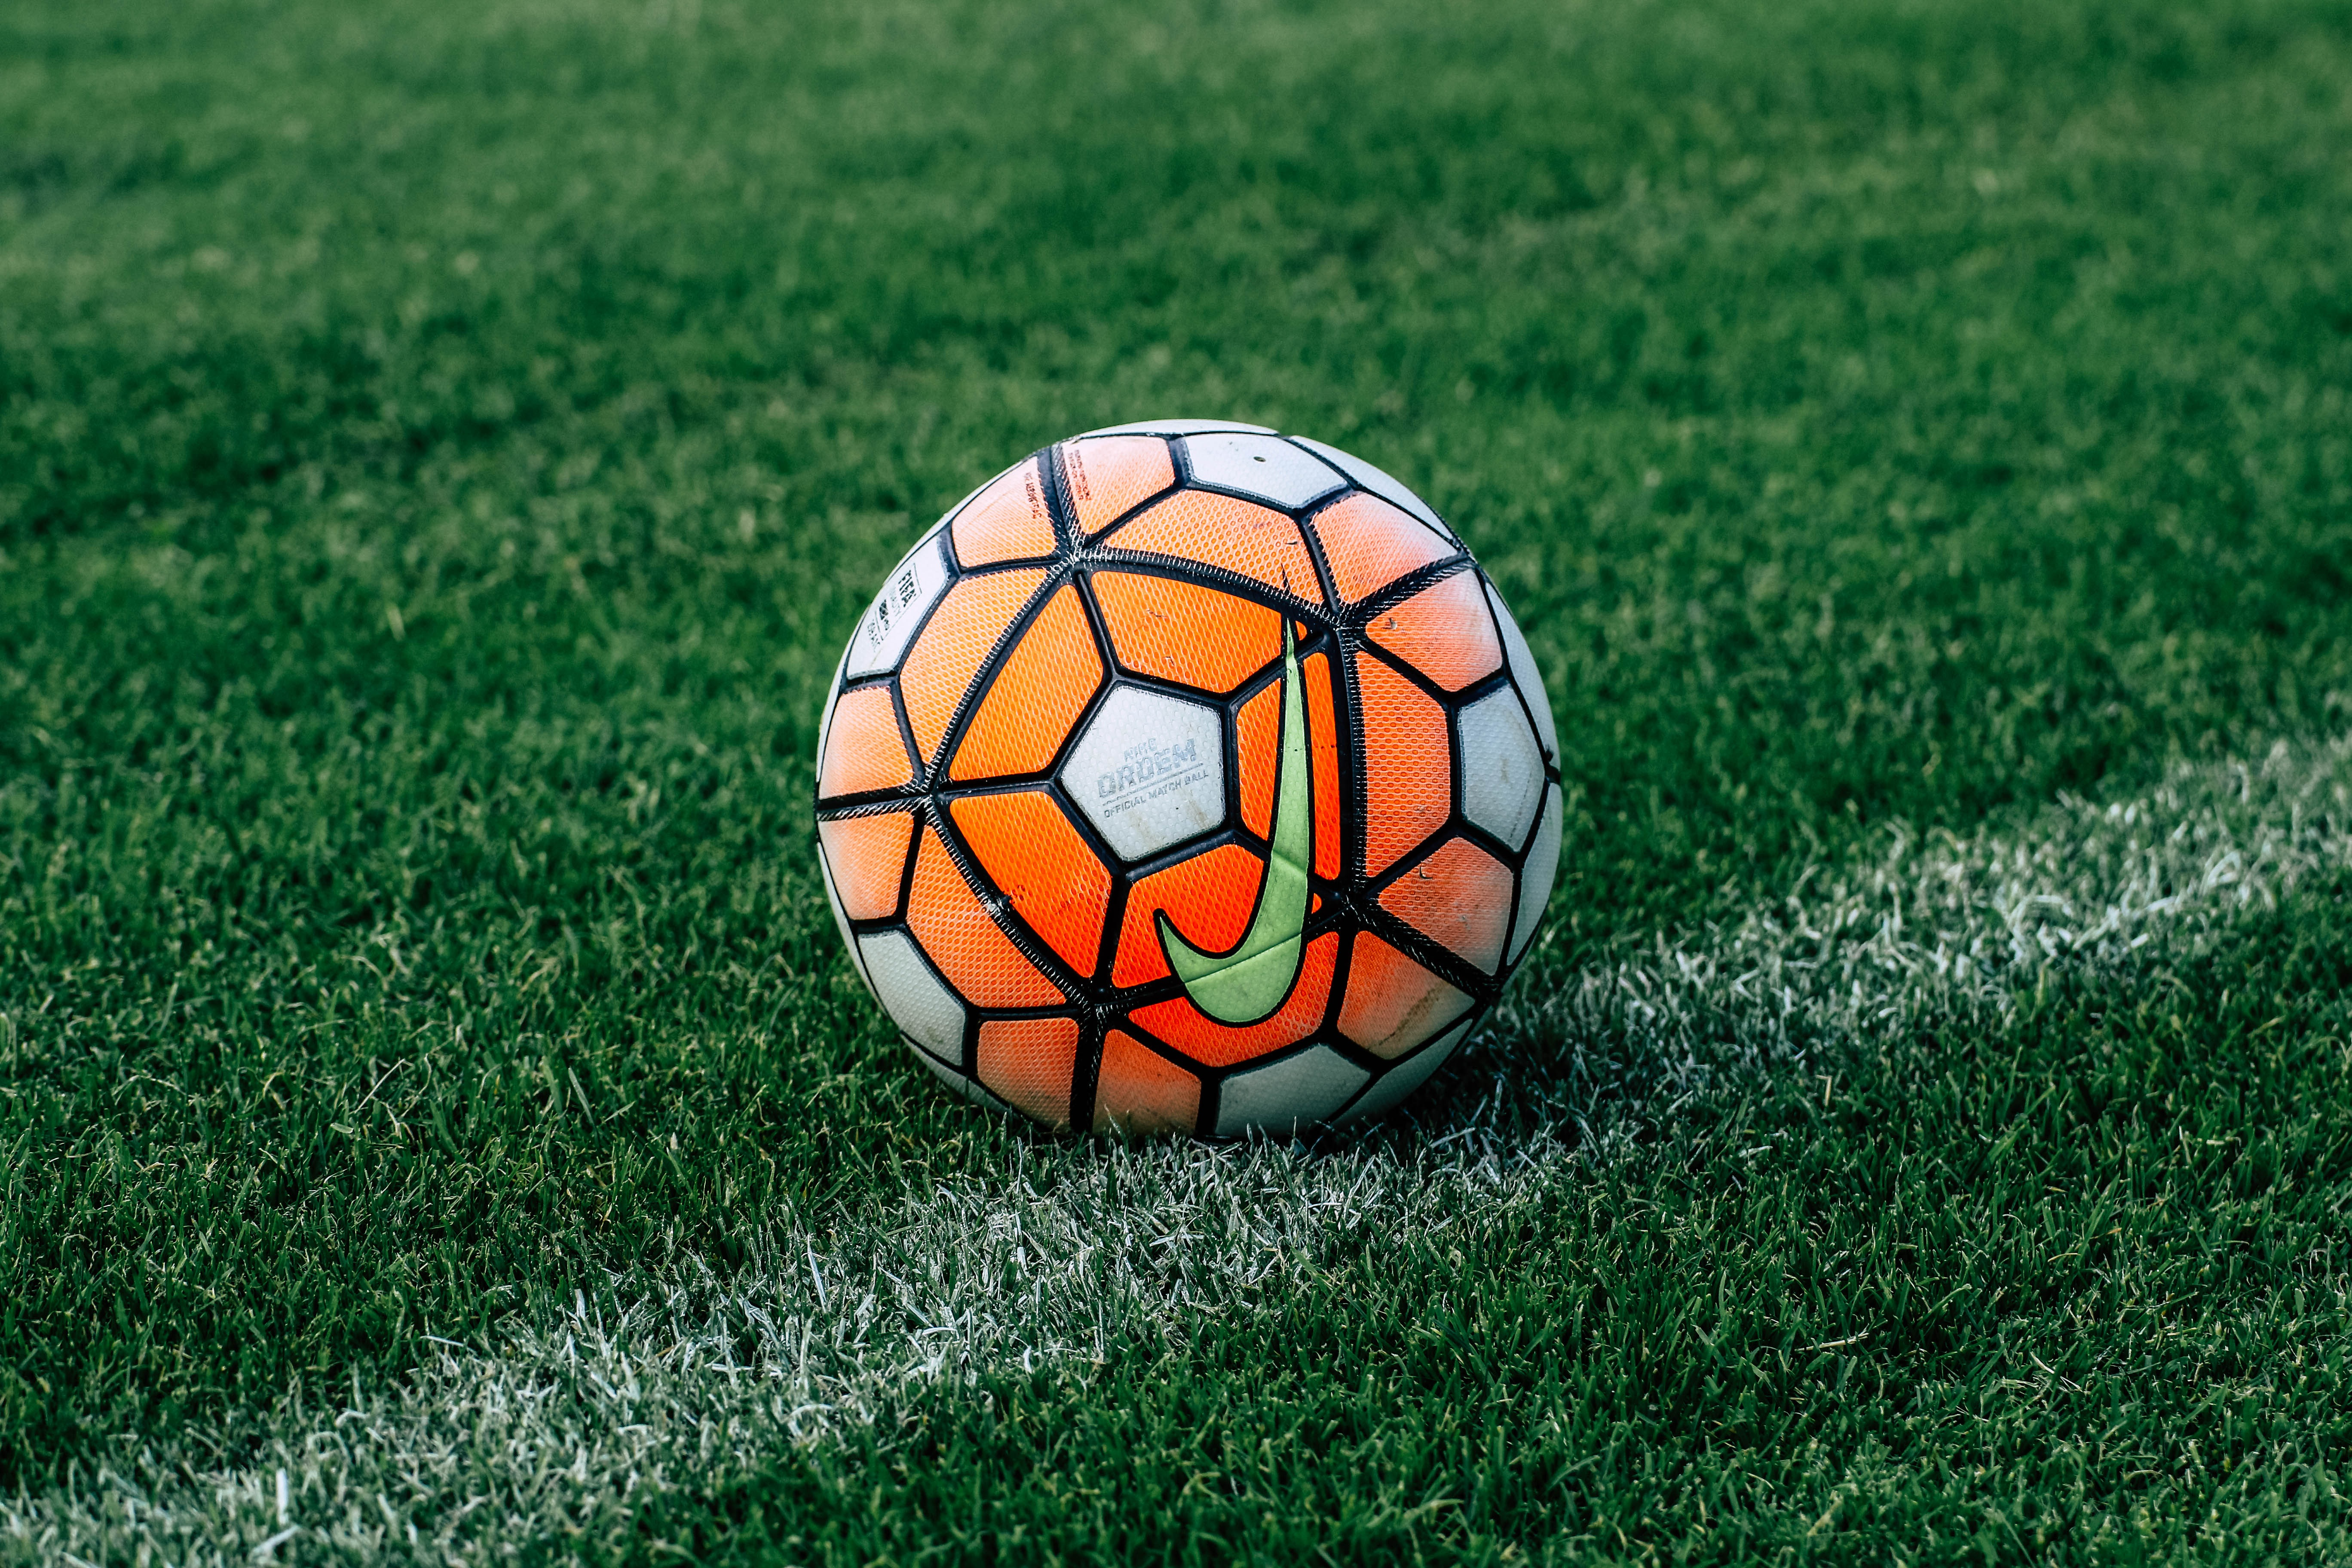 114970 download wallpaper Sports, Football, Grass, Lawn, Soccer Ball screensavers and pictures for free